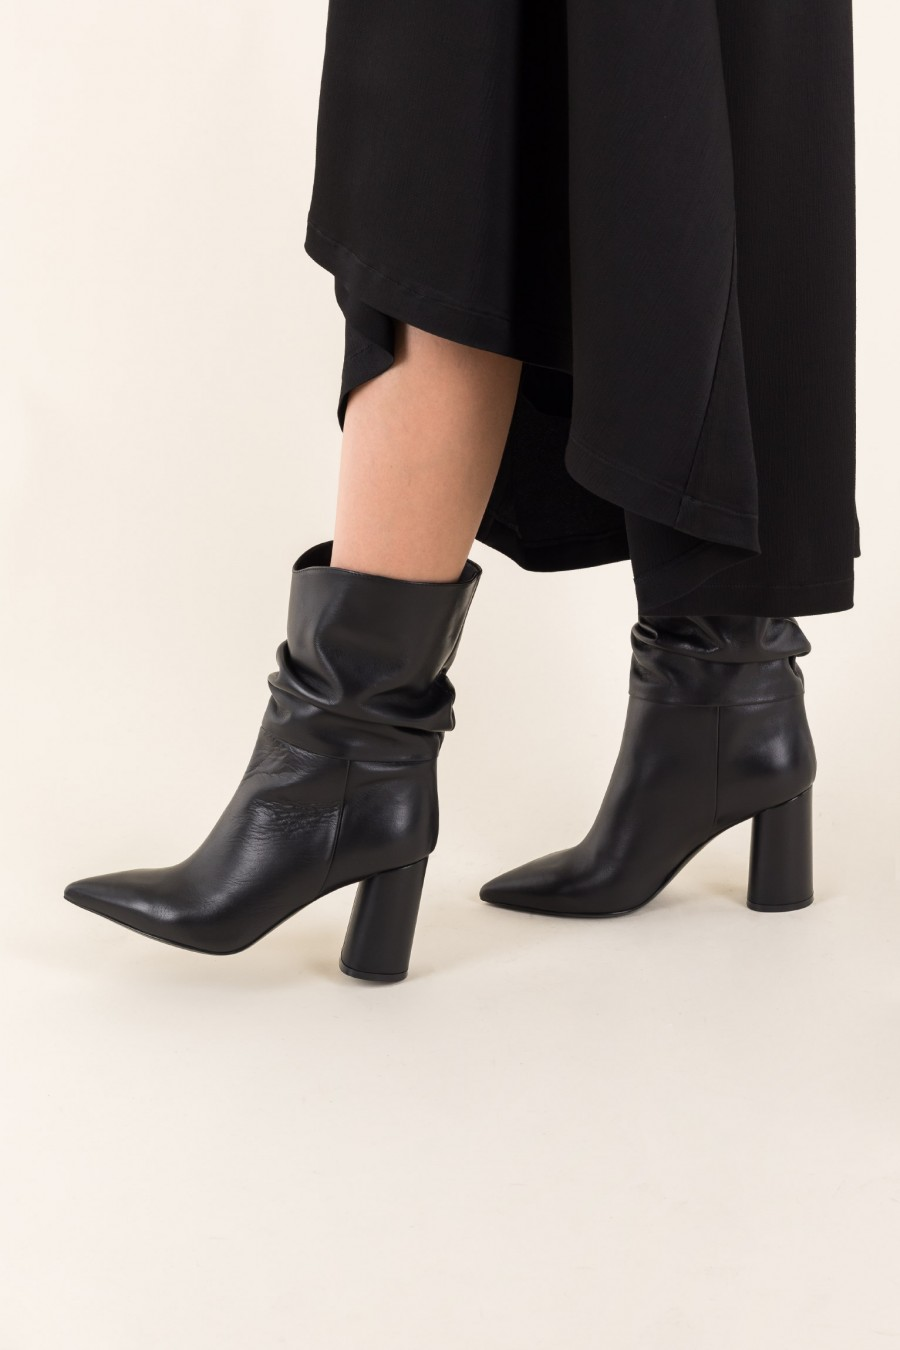 Slouch black boots